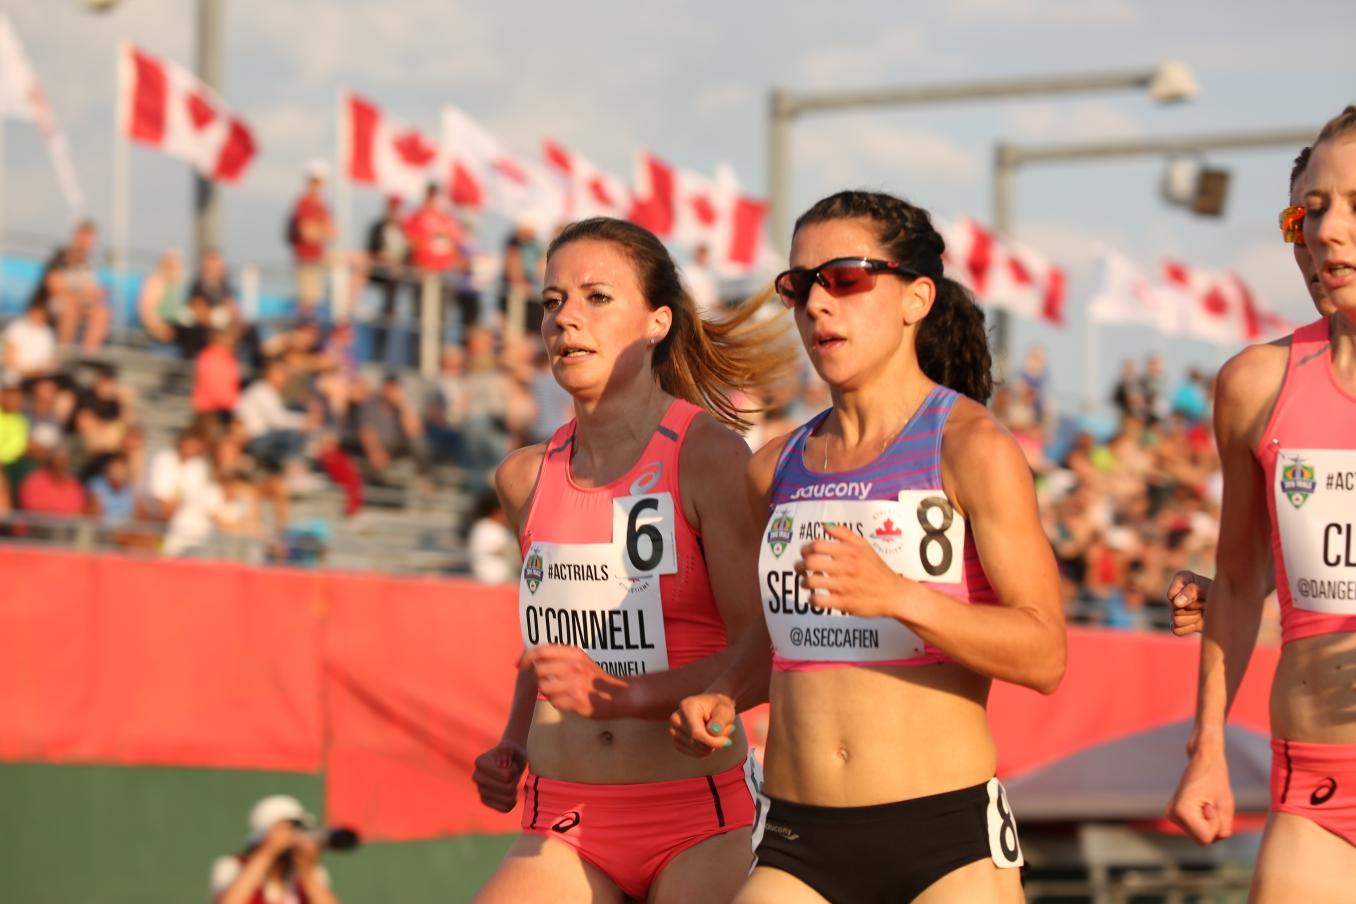 Jessica O'Connell running